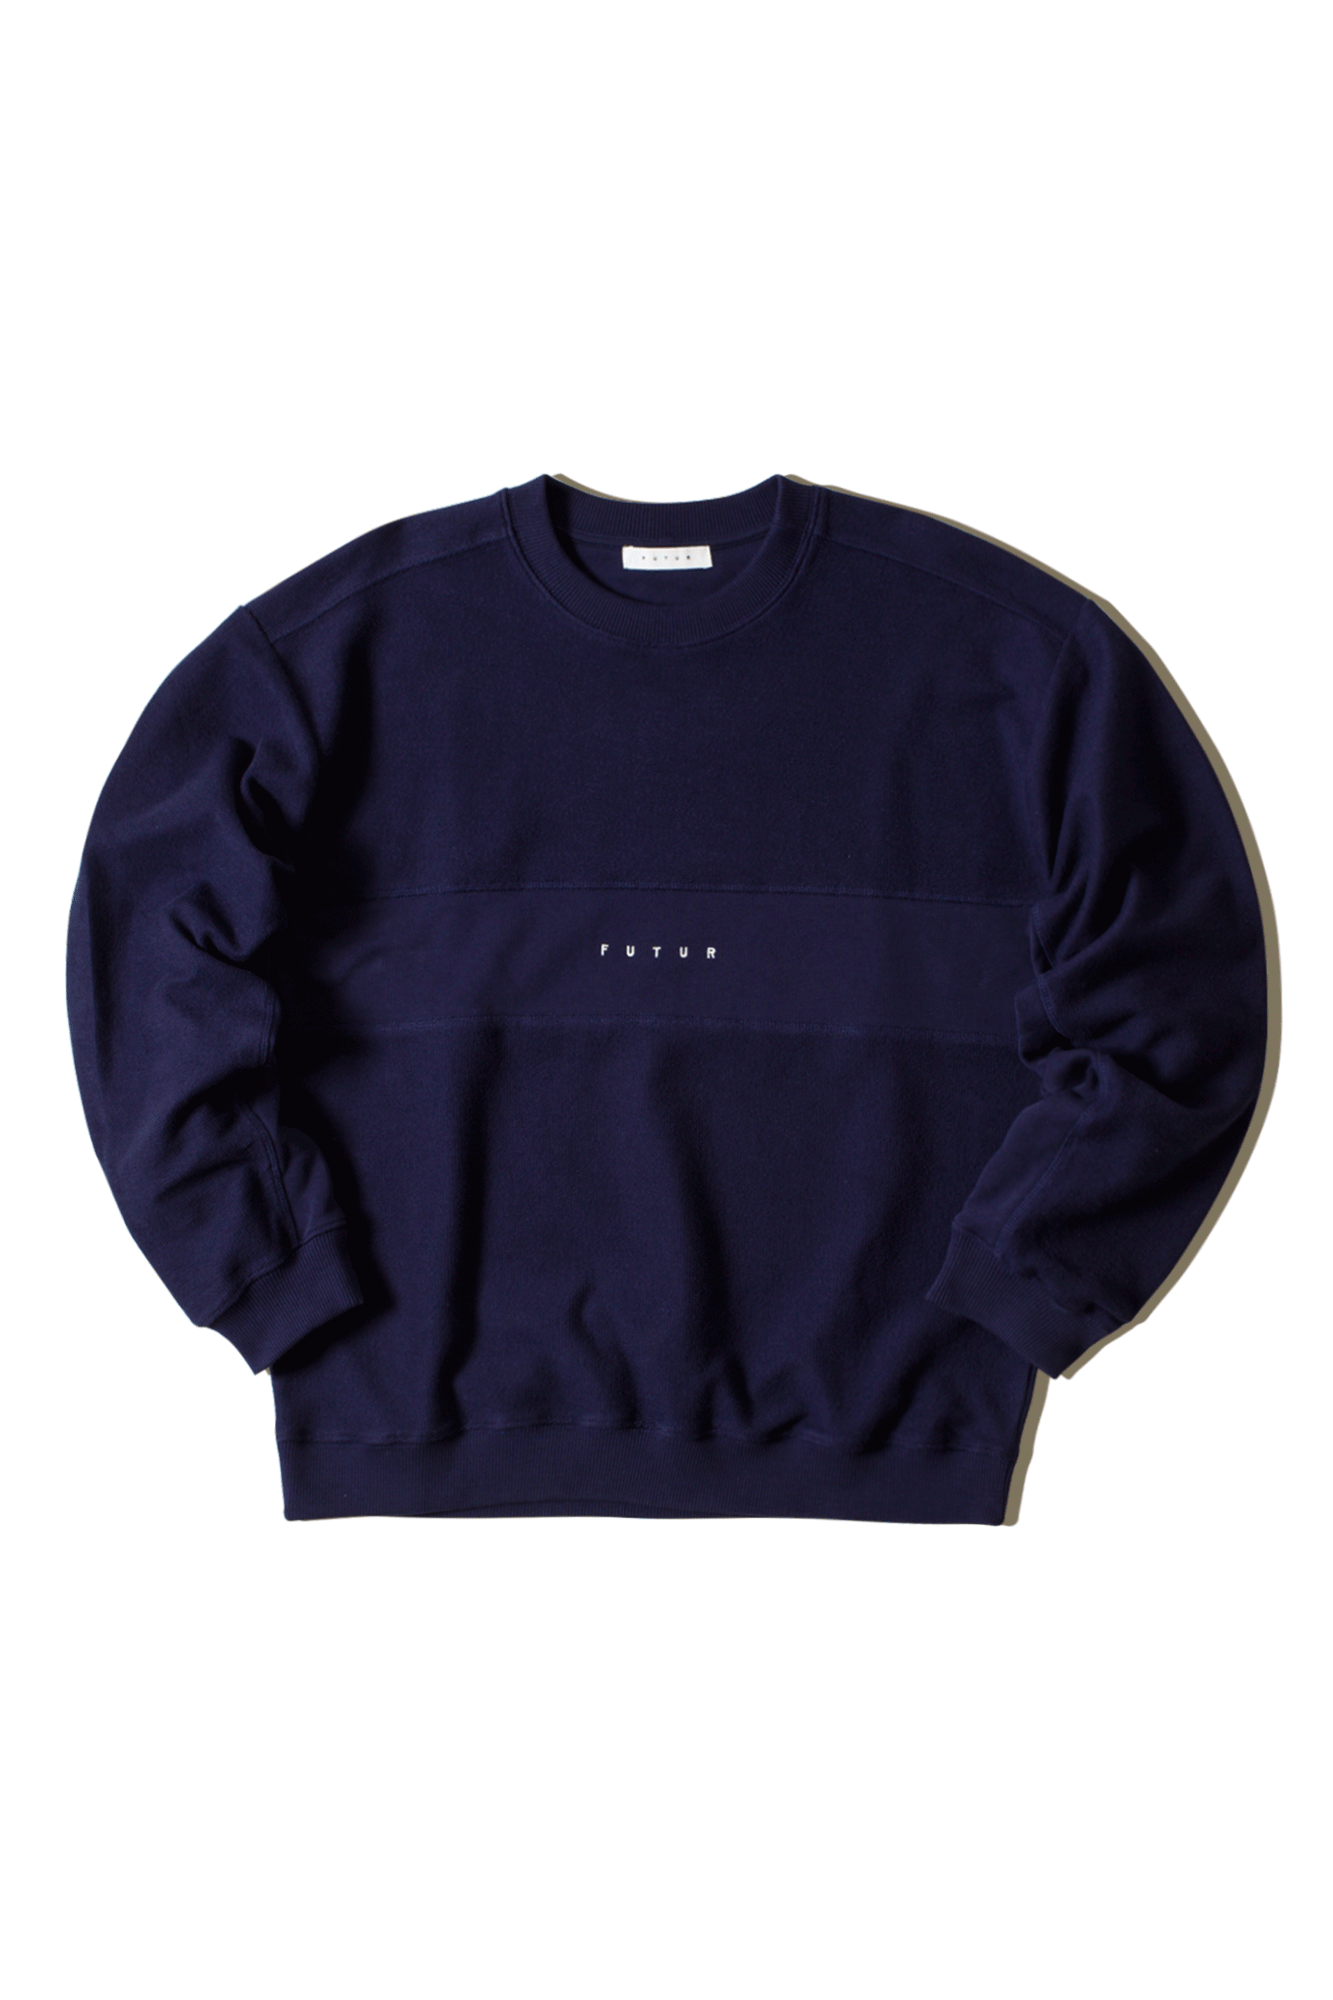 Sweaters Futur Inc Inside Out G Fit Crew Purple - One Block Down